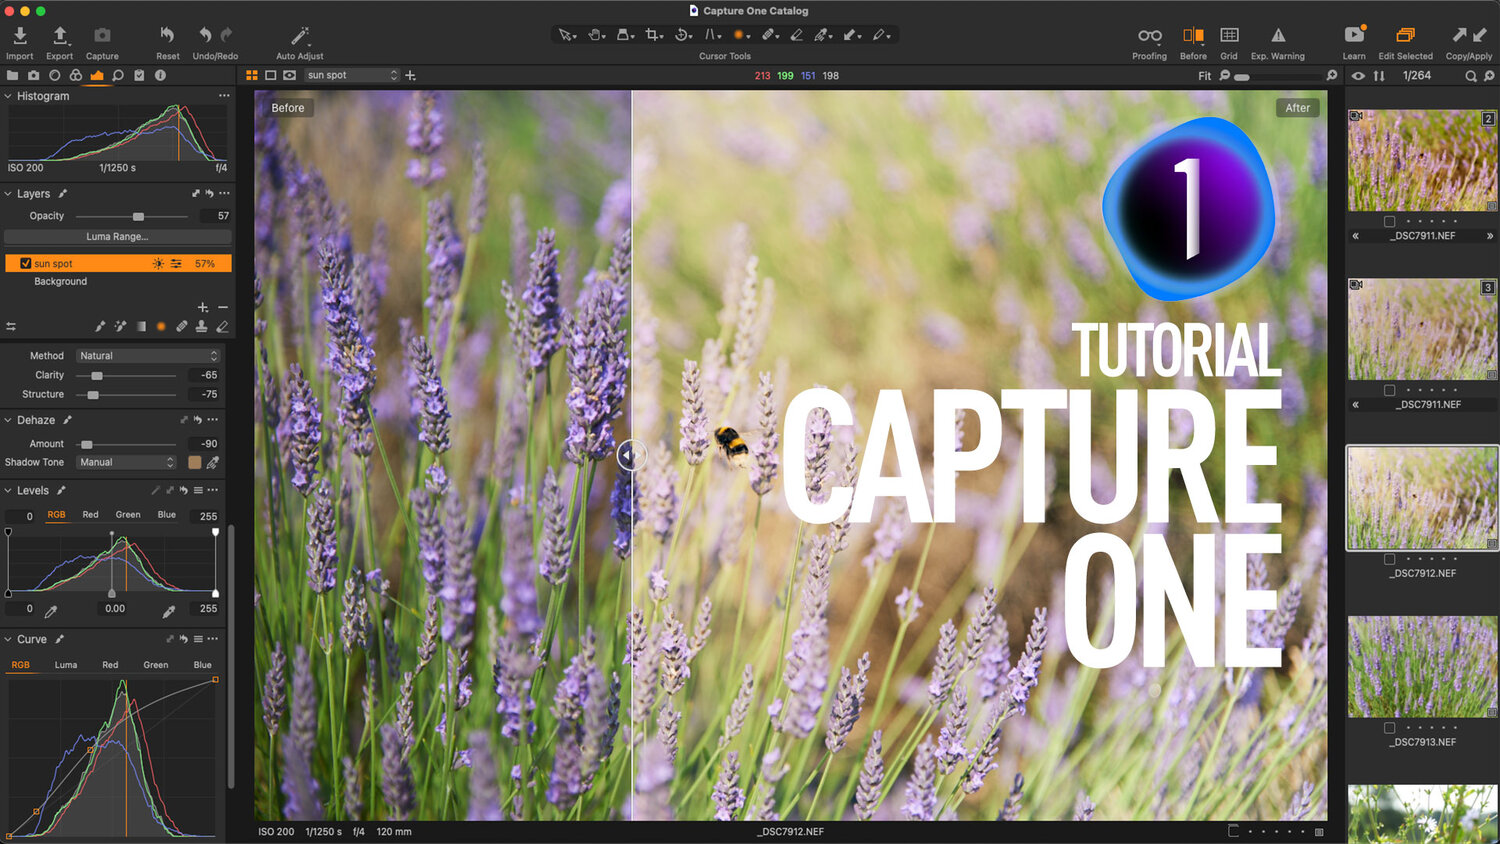 Video: Use Negative Dehaze Creatively in Capture One to create a soft light effect